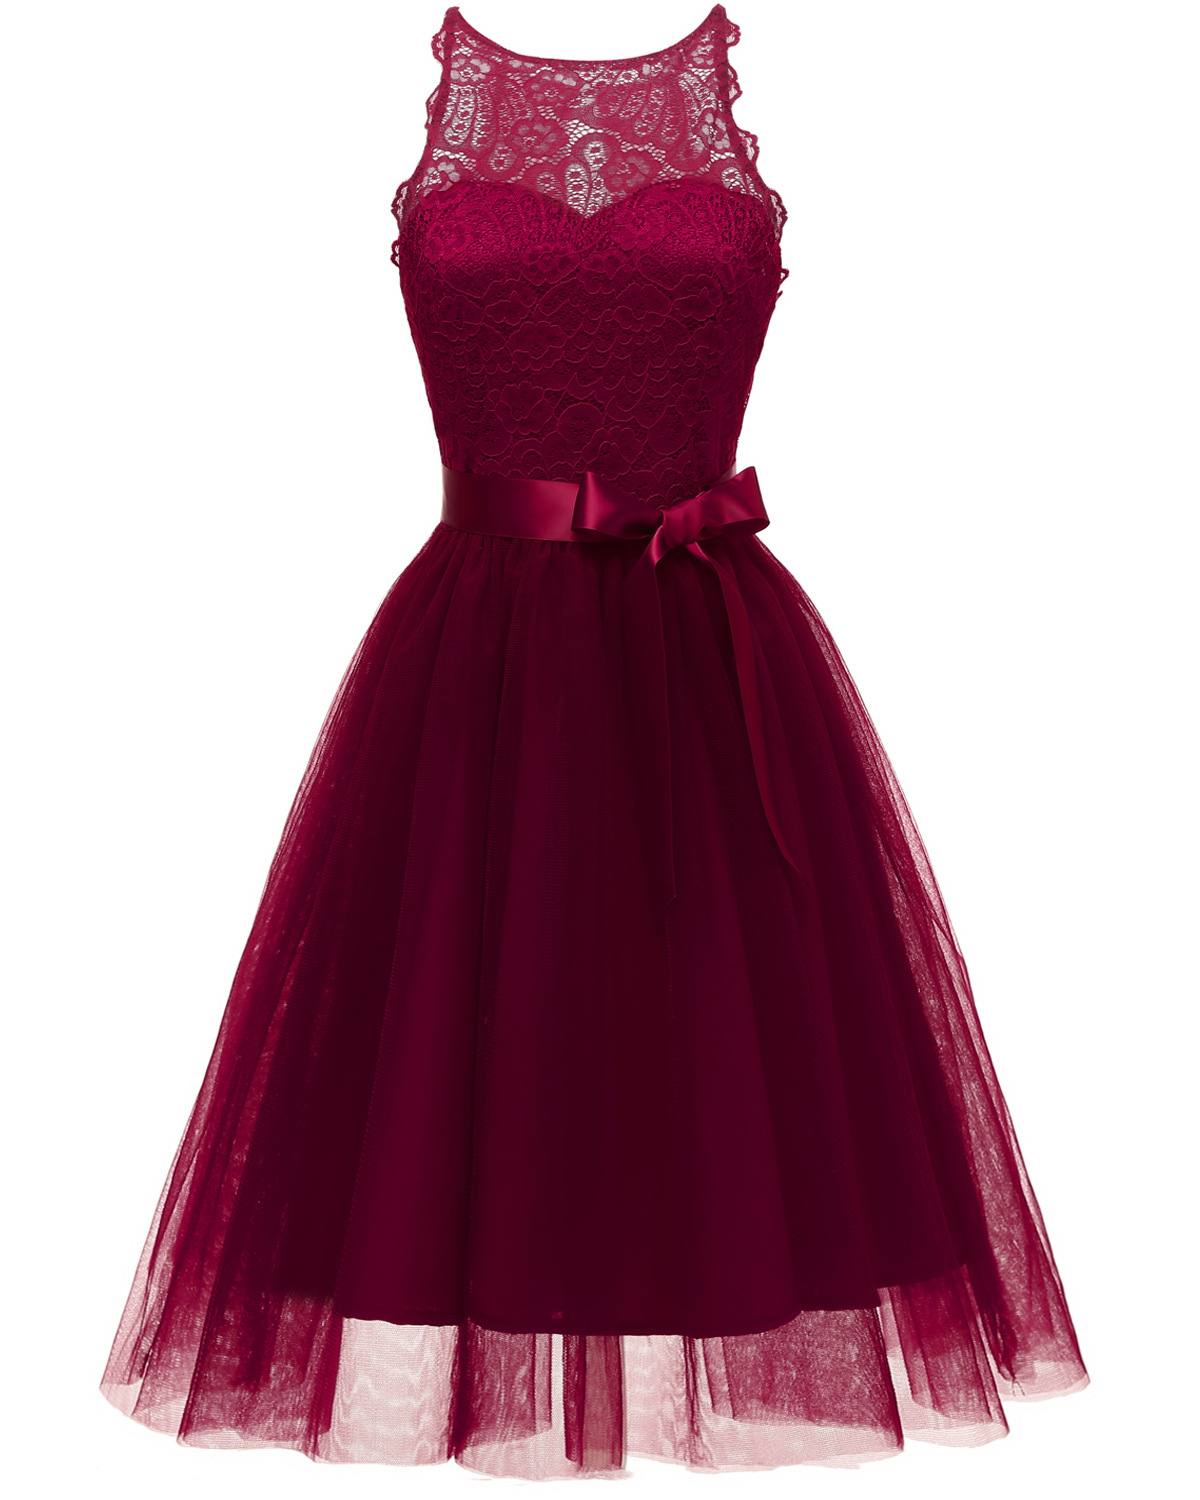 Elegant Pink Prom Dresses Burgundy Sexy Prom Dress Short O Neck Lace Zipper Back Knee-Length Graduation Party Gowns Blue Gown